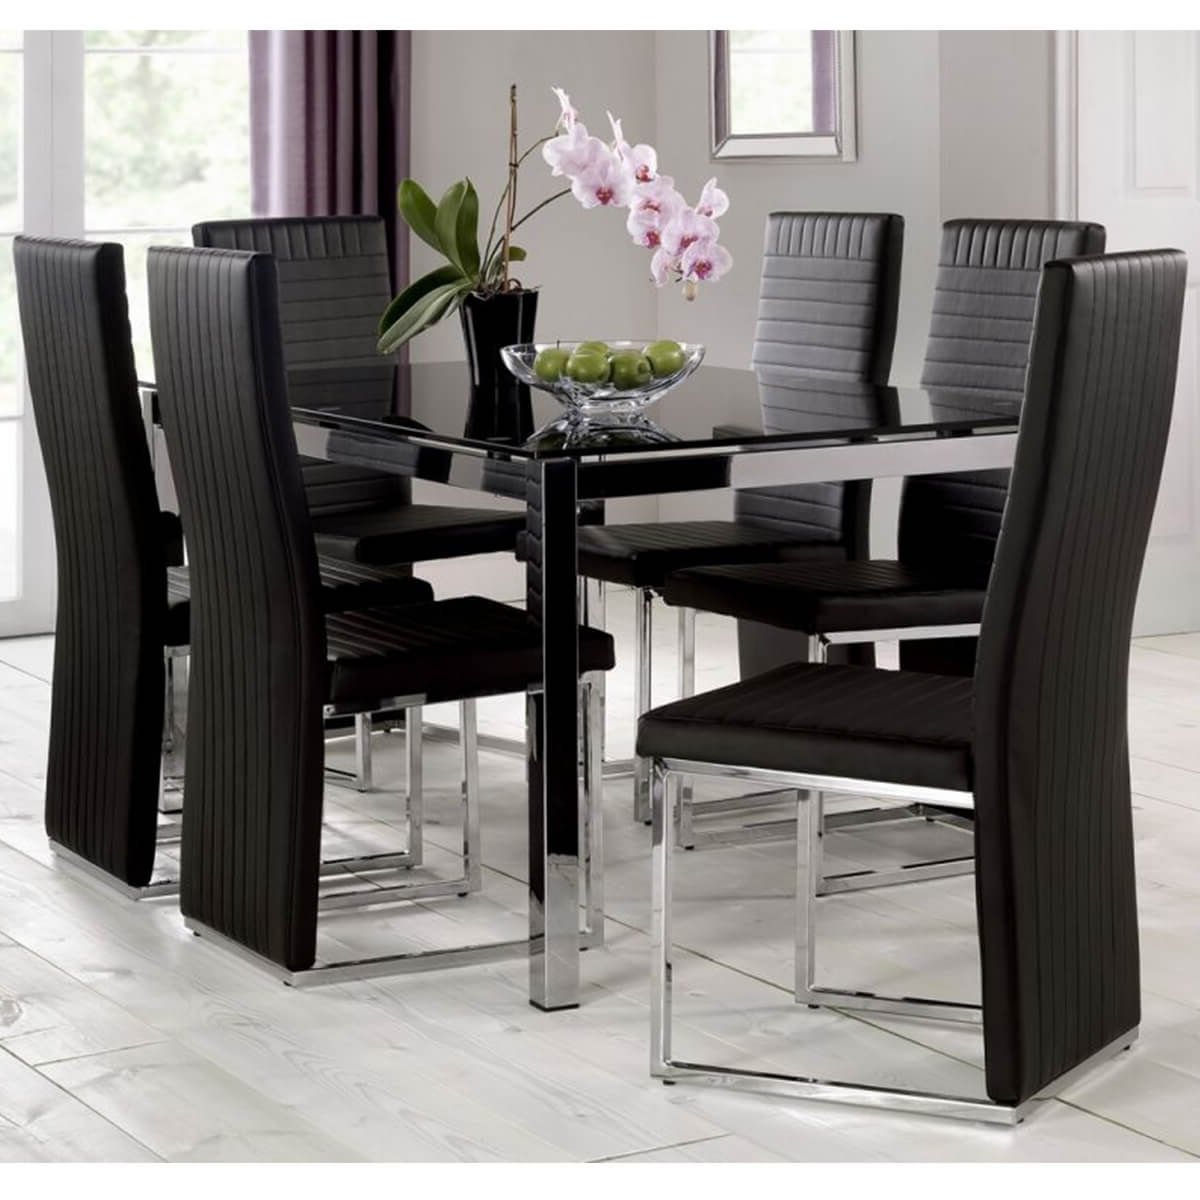 Black Glass Dining Tables And 6 Chairs Pertaining To Fashionable Tempo Black Dining Table With Black Chairs (View 8 of 25)